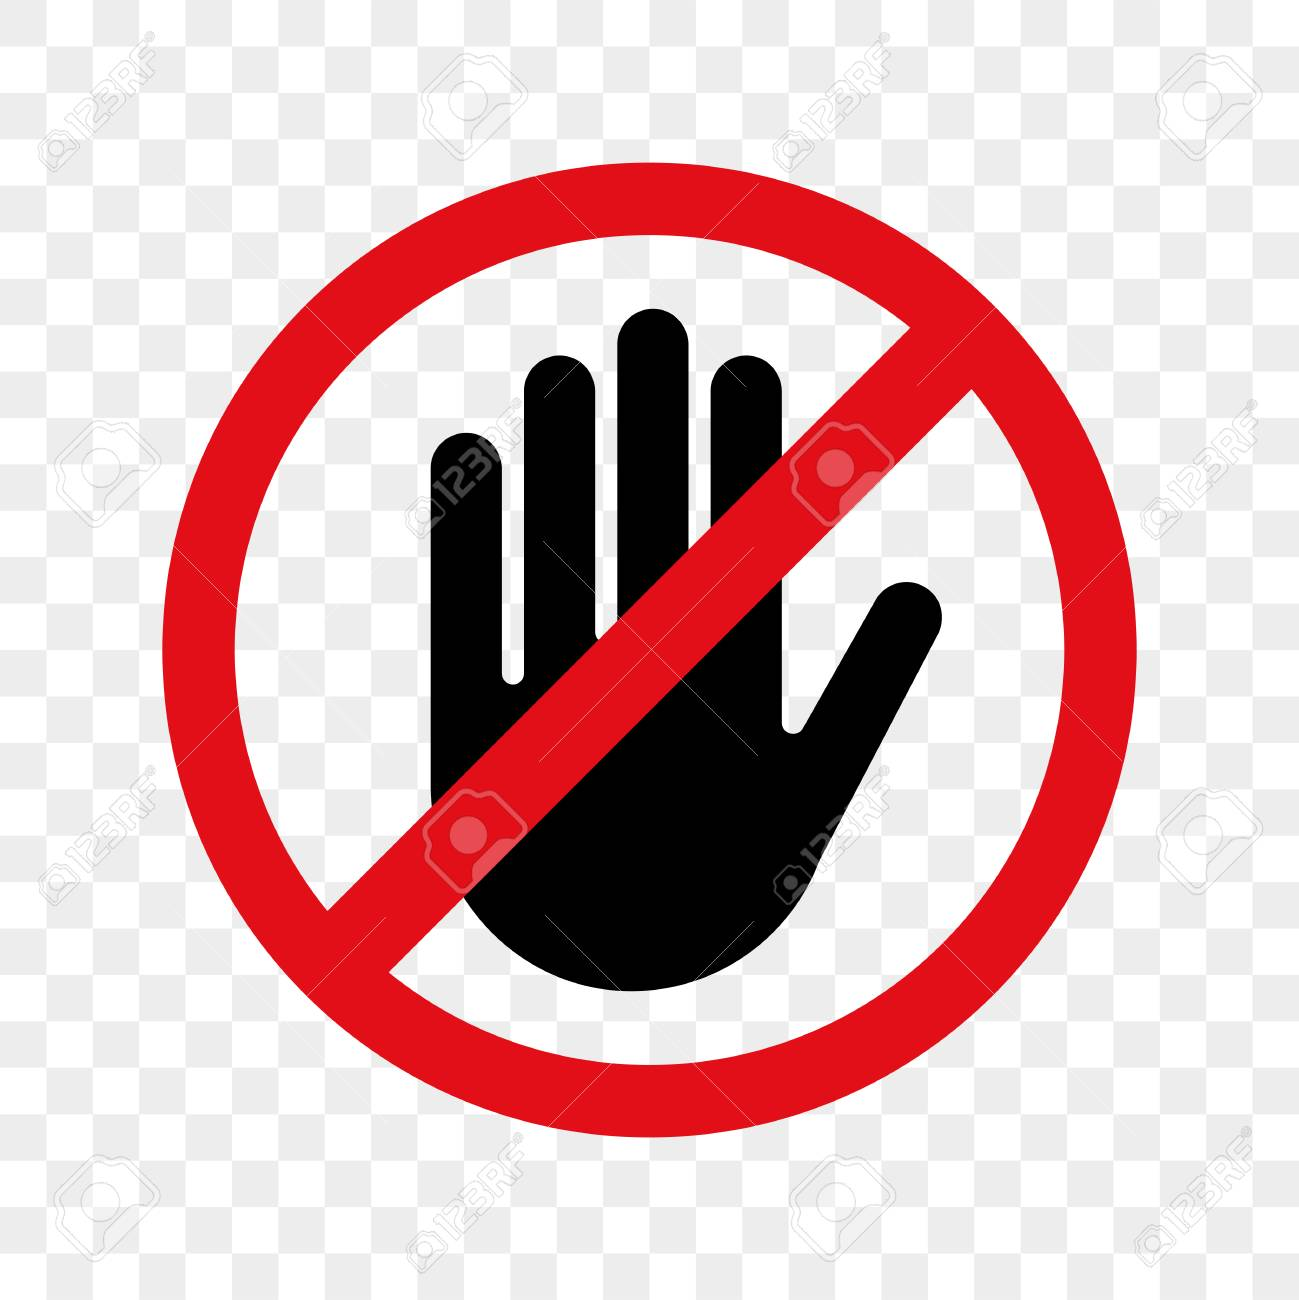 Stop hand vector warning icon for no entry or don't touch sign..